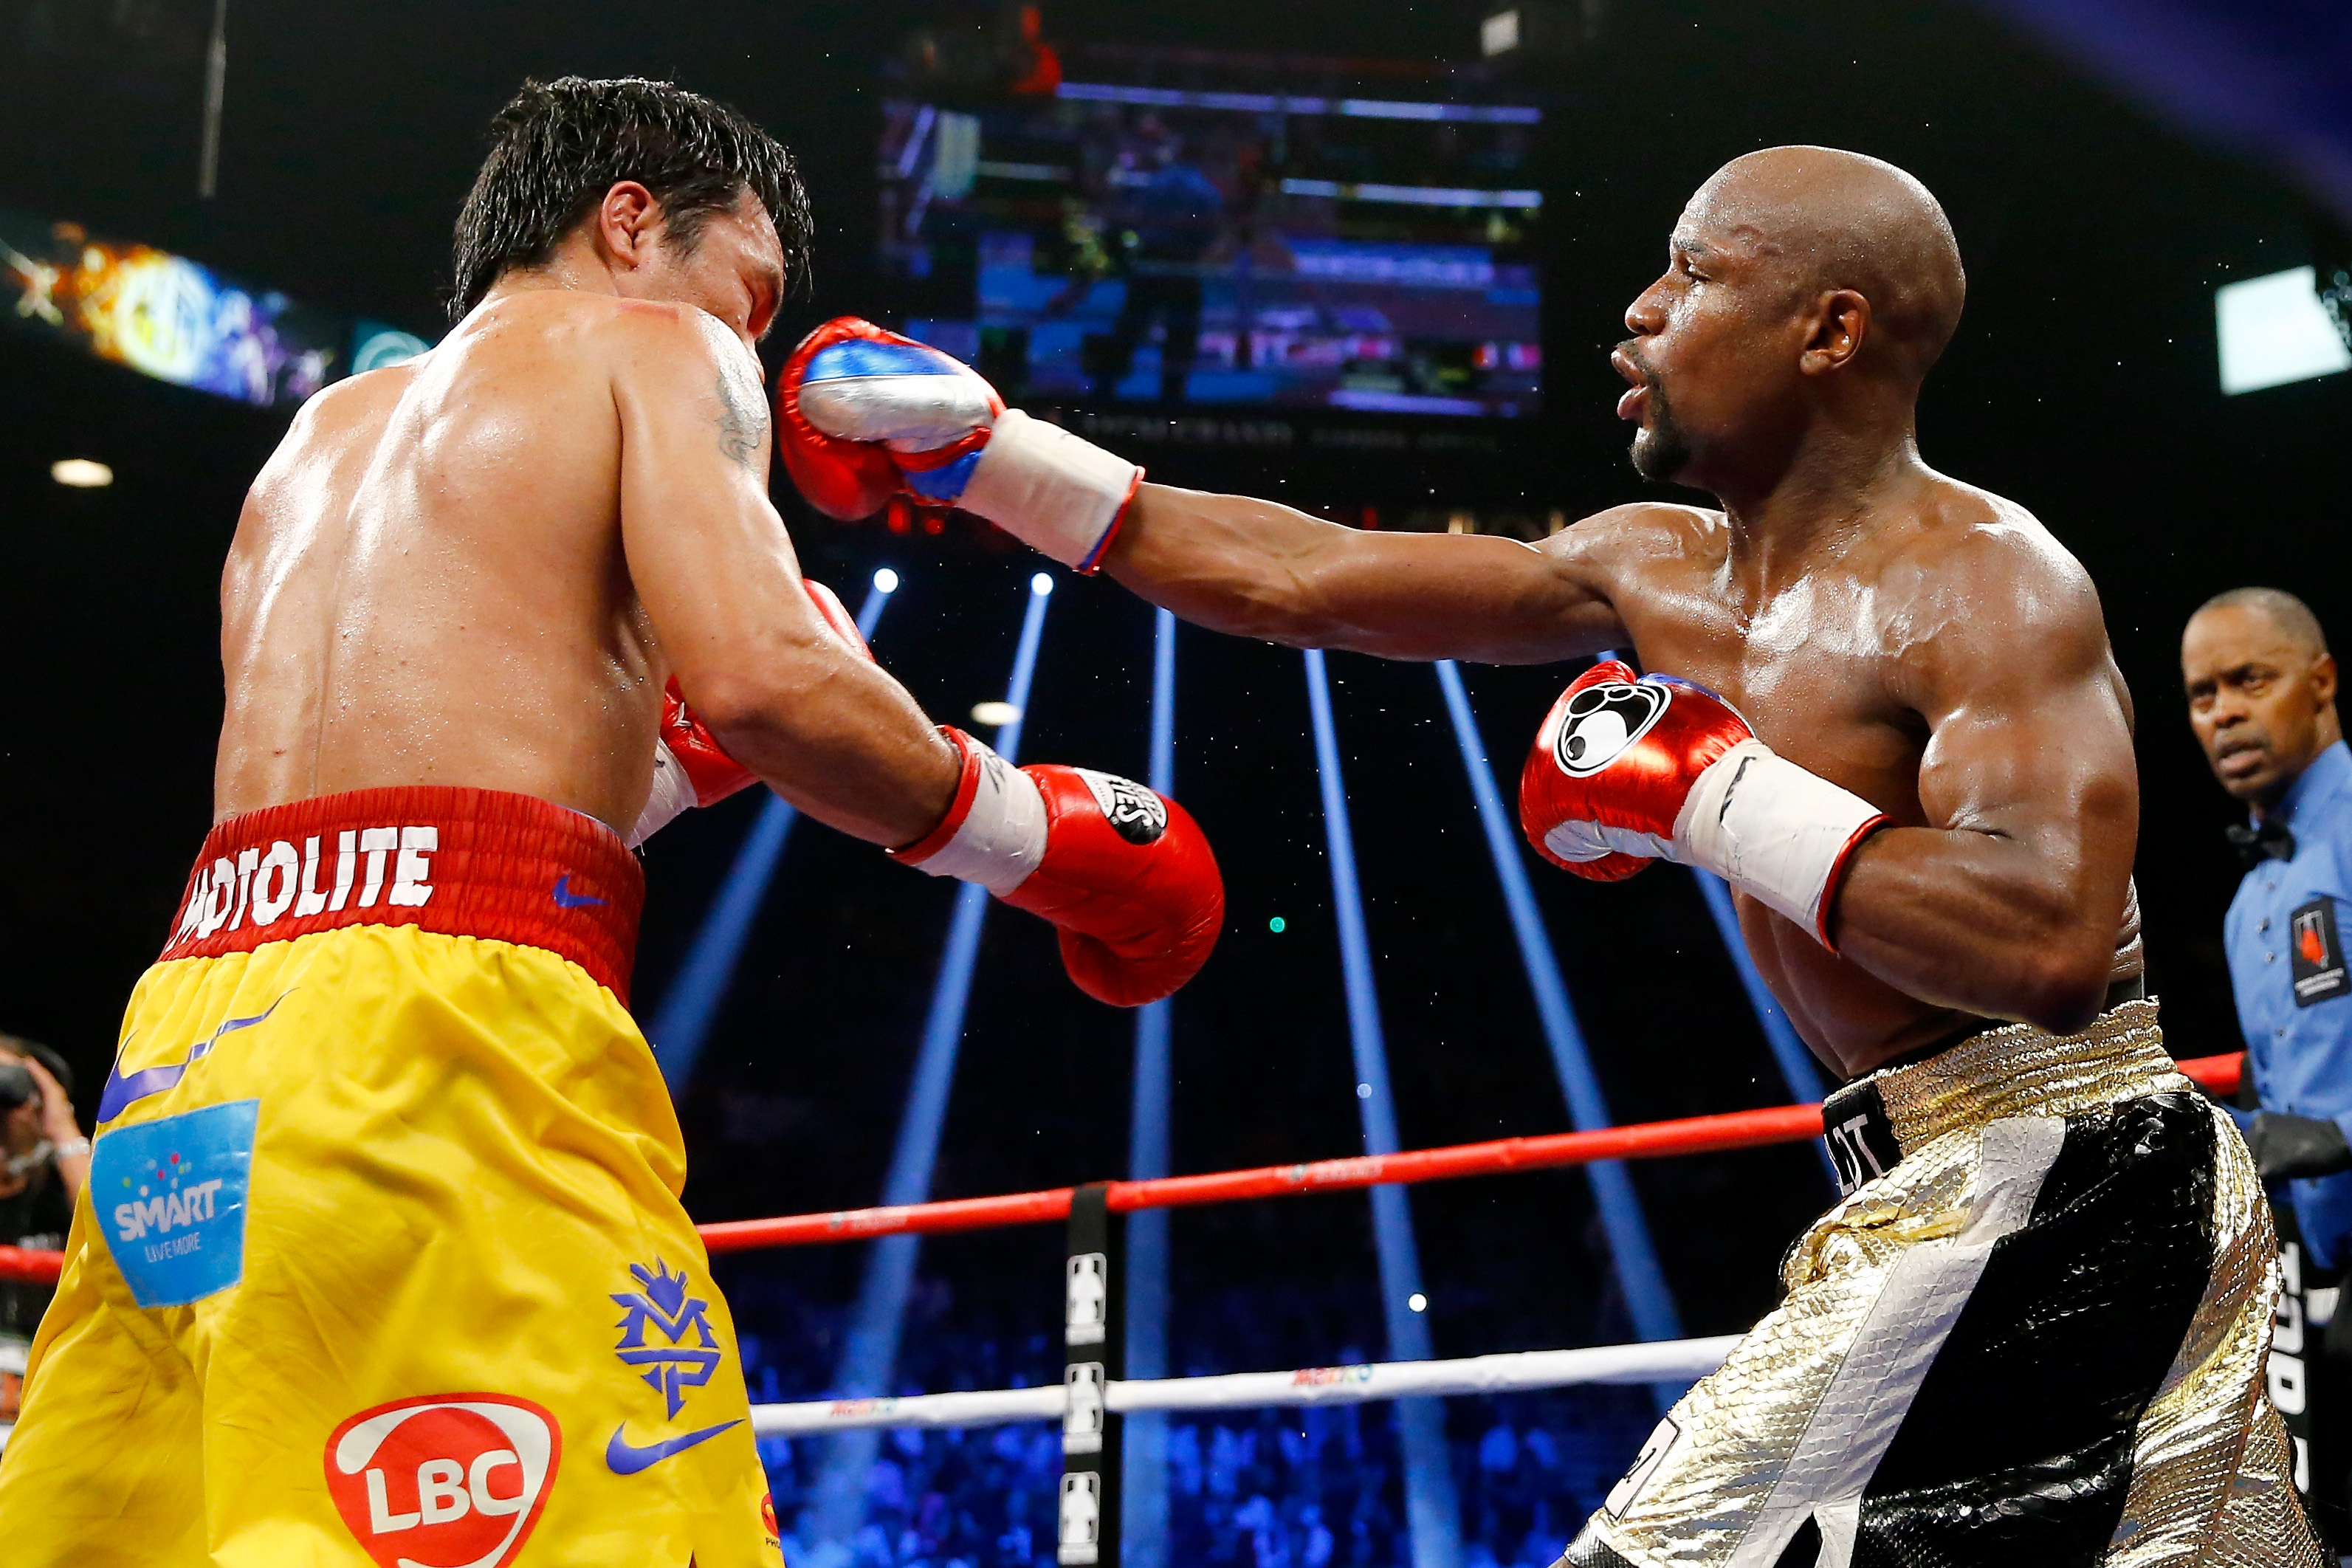 Floyd Mayweather Jr. throws a right at Manny Pacquiao during their welterweight unification championship bout on May 2, 2015 at MGM Grand Garden Arena in Las Vegas, Nevada. (Getty)